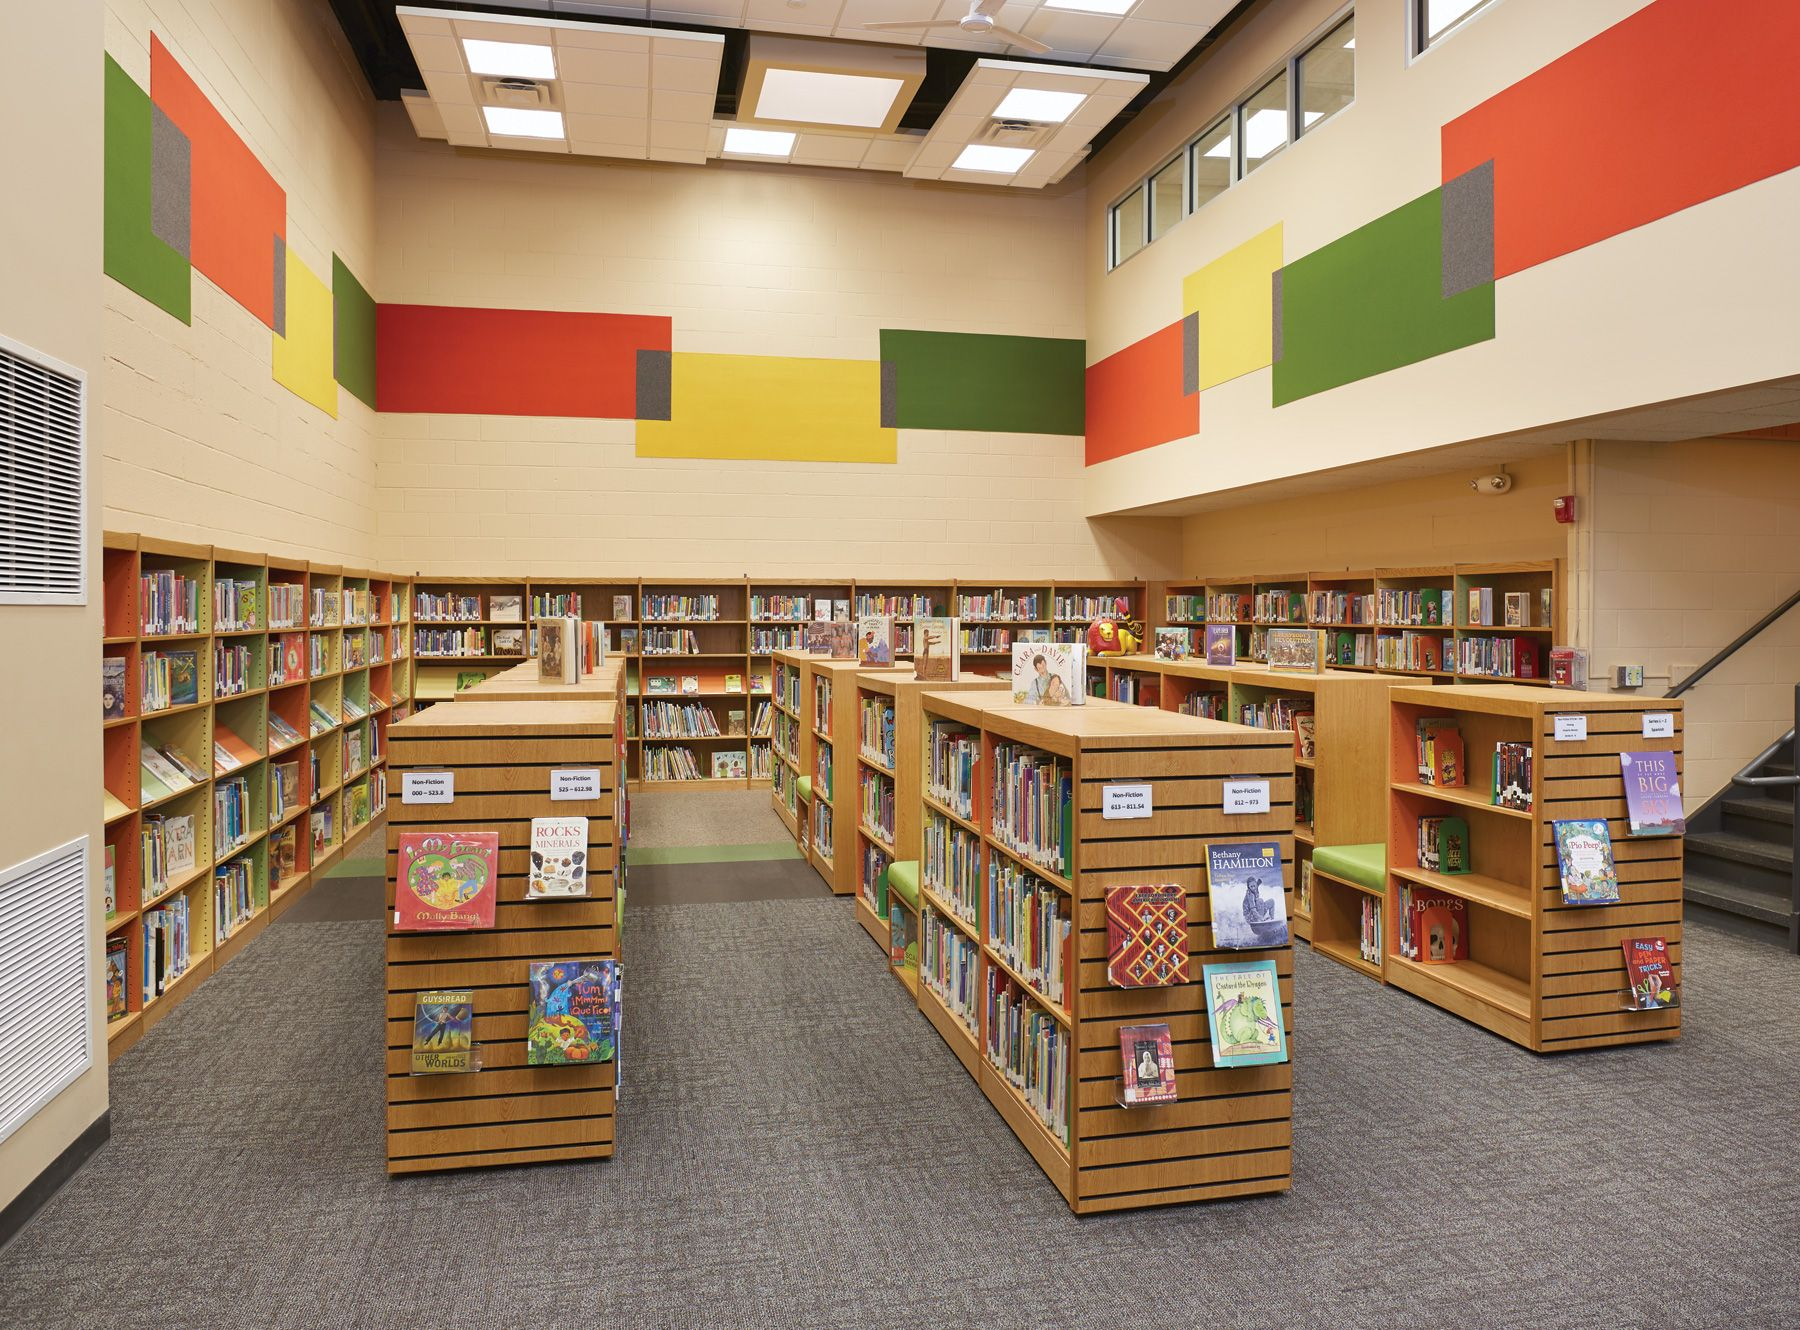 Get Library Decorating Ideas For Your School See How An Elementary Stuck In The Underwent A Dramatic Interior Design Makeover